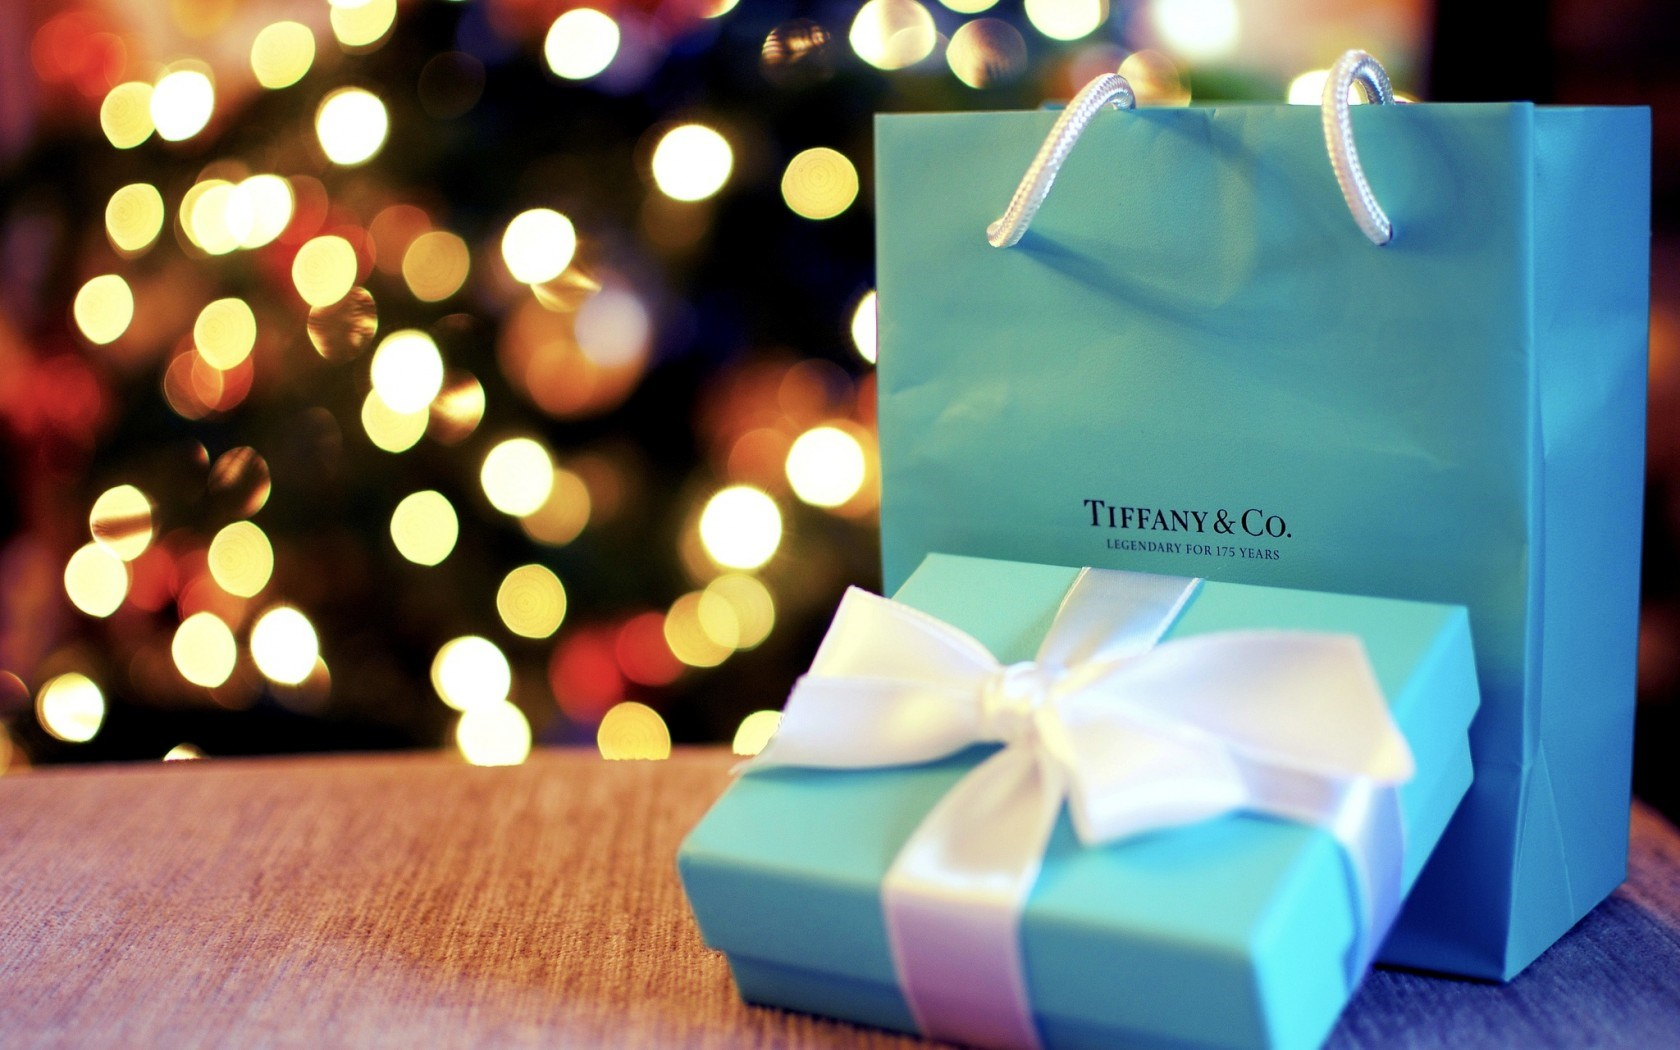 Christmas Tree Lights Holiday Gift Blue Box Ribbon Bow Bag Bokeh